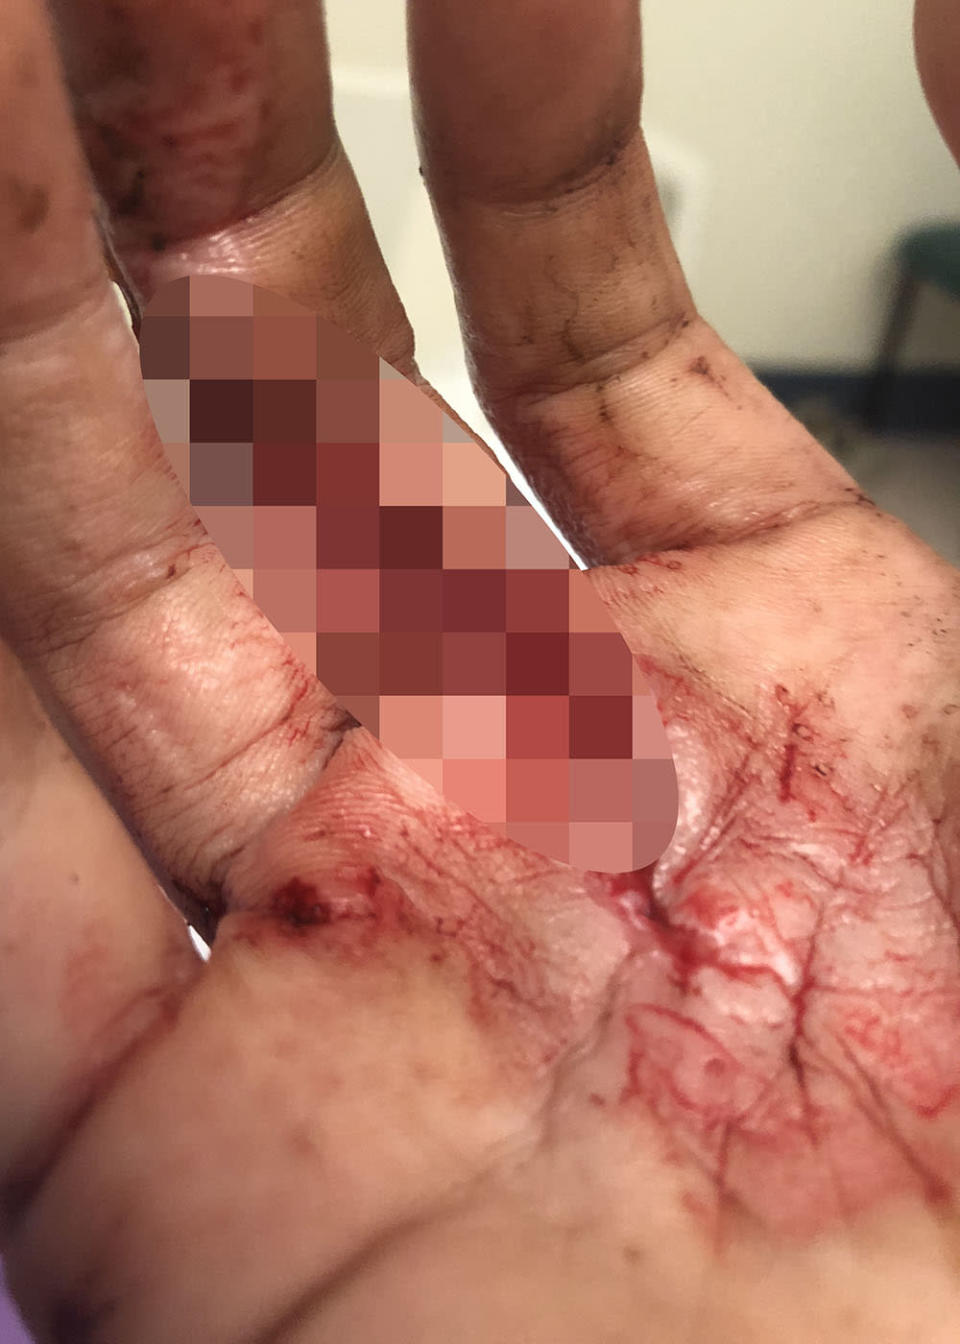 Sarah Wylie's hand injury, which she sustained as she fell down the mountain in Queensland. Source: Caters